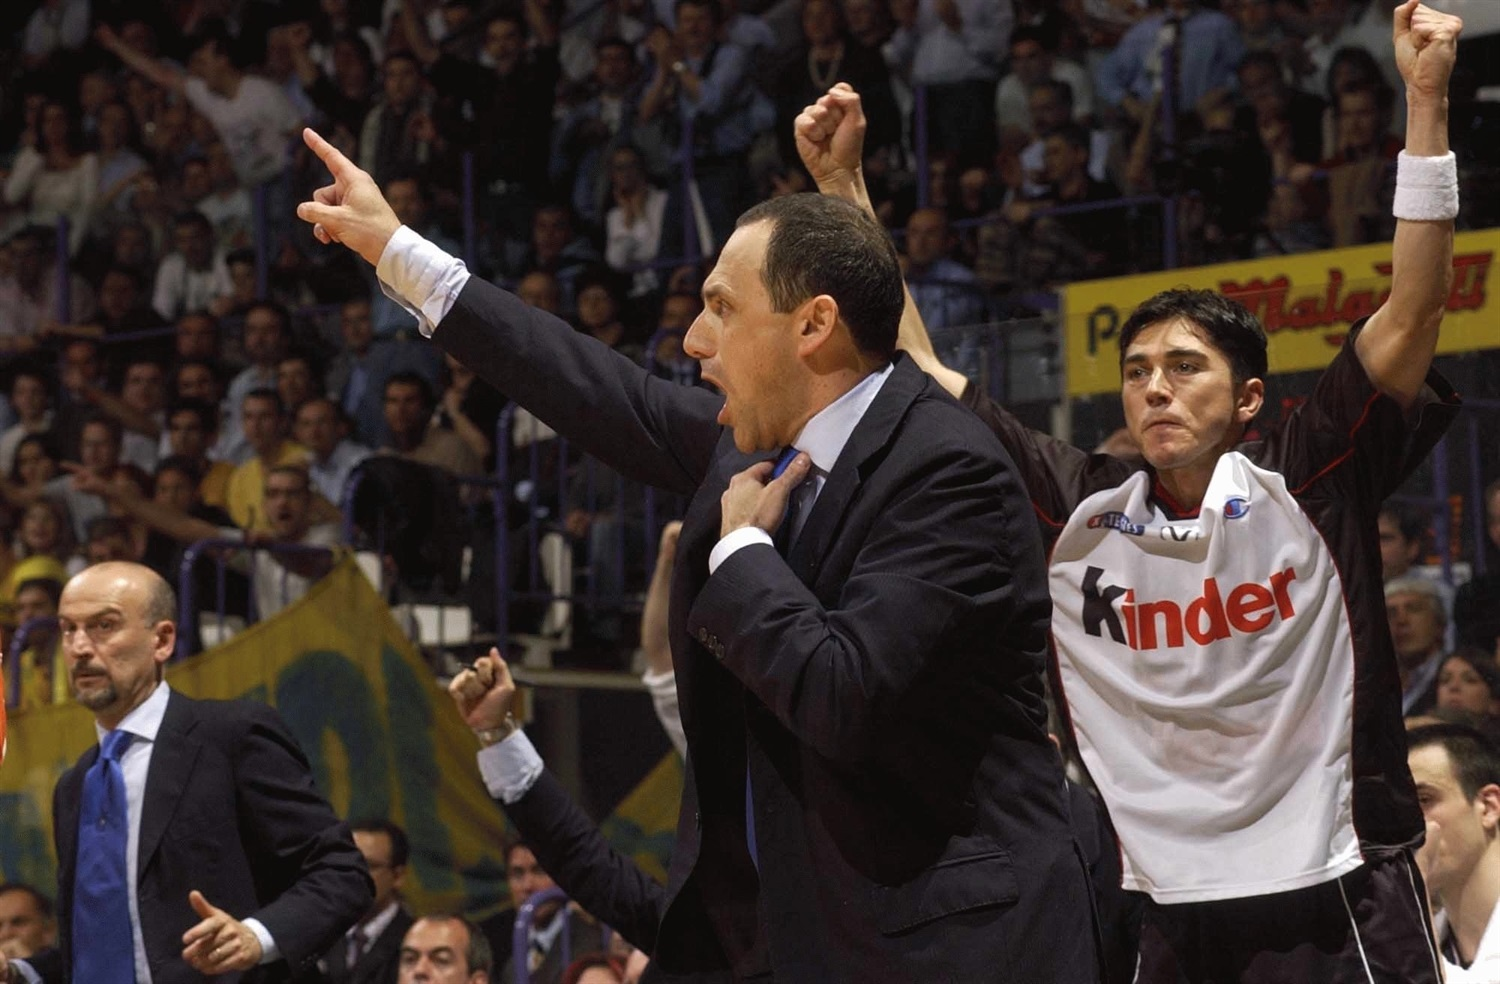 Ettore Messina - Kinder Virtus Bologna - Final Four Bologna 2002 - EB01